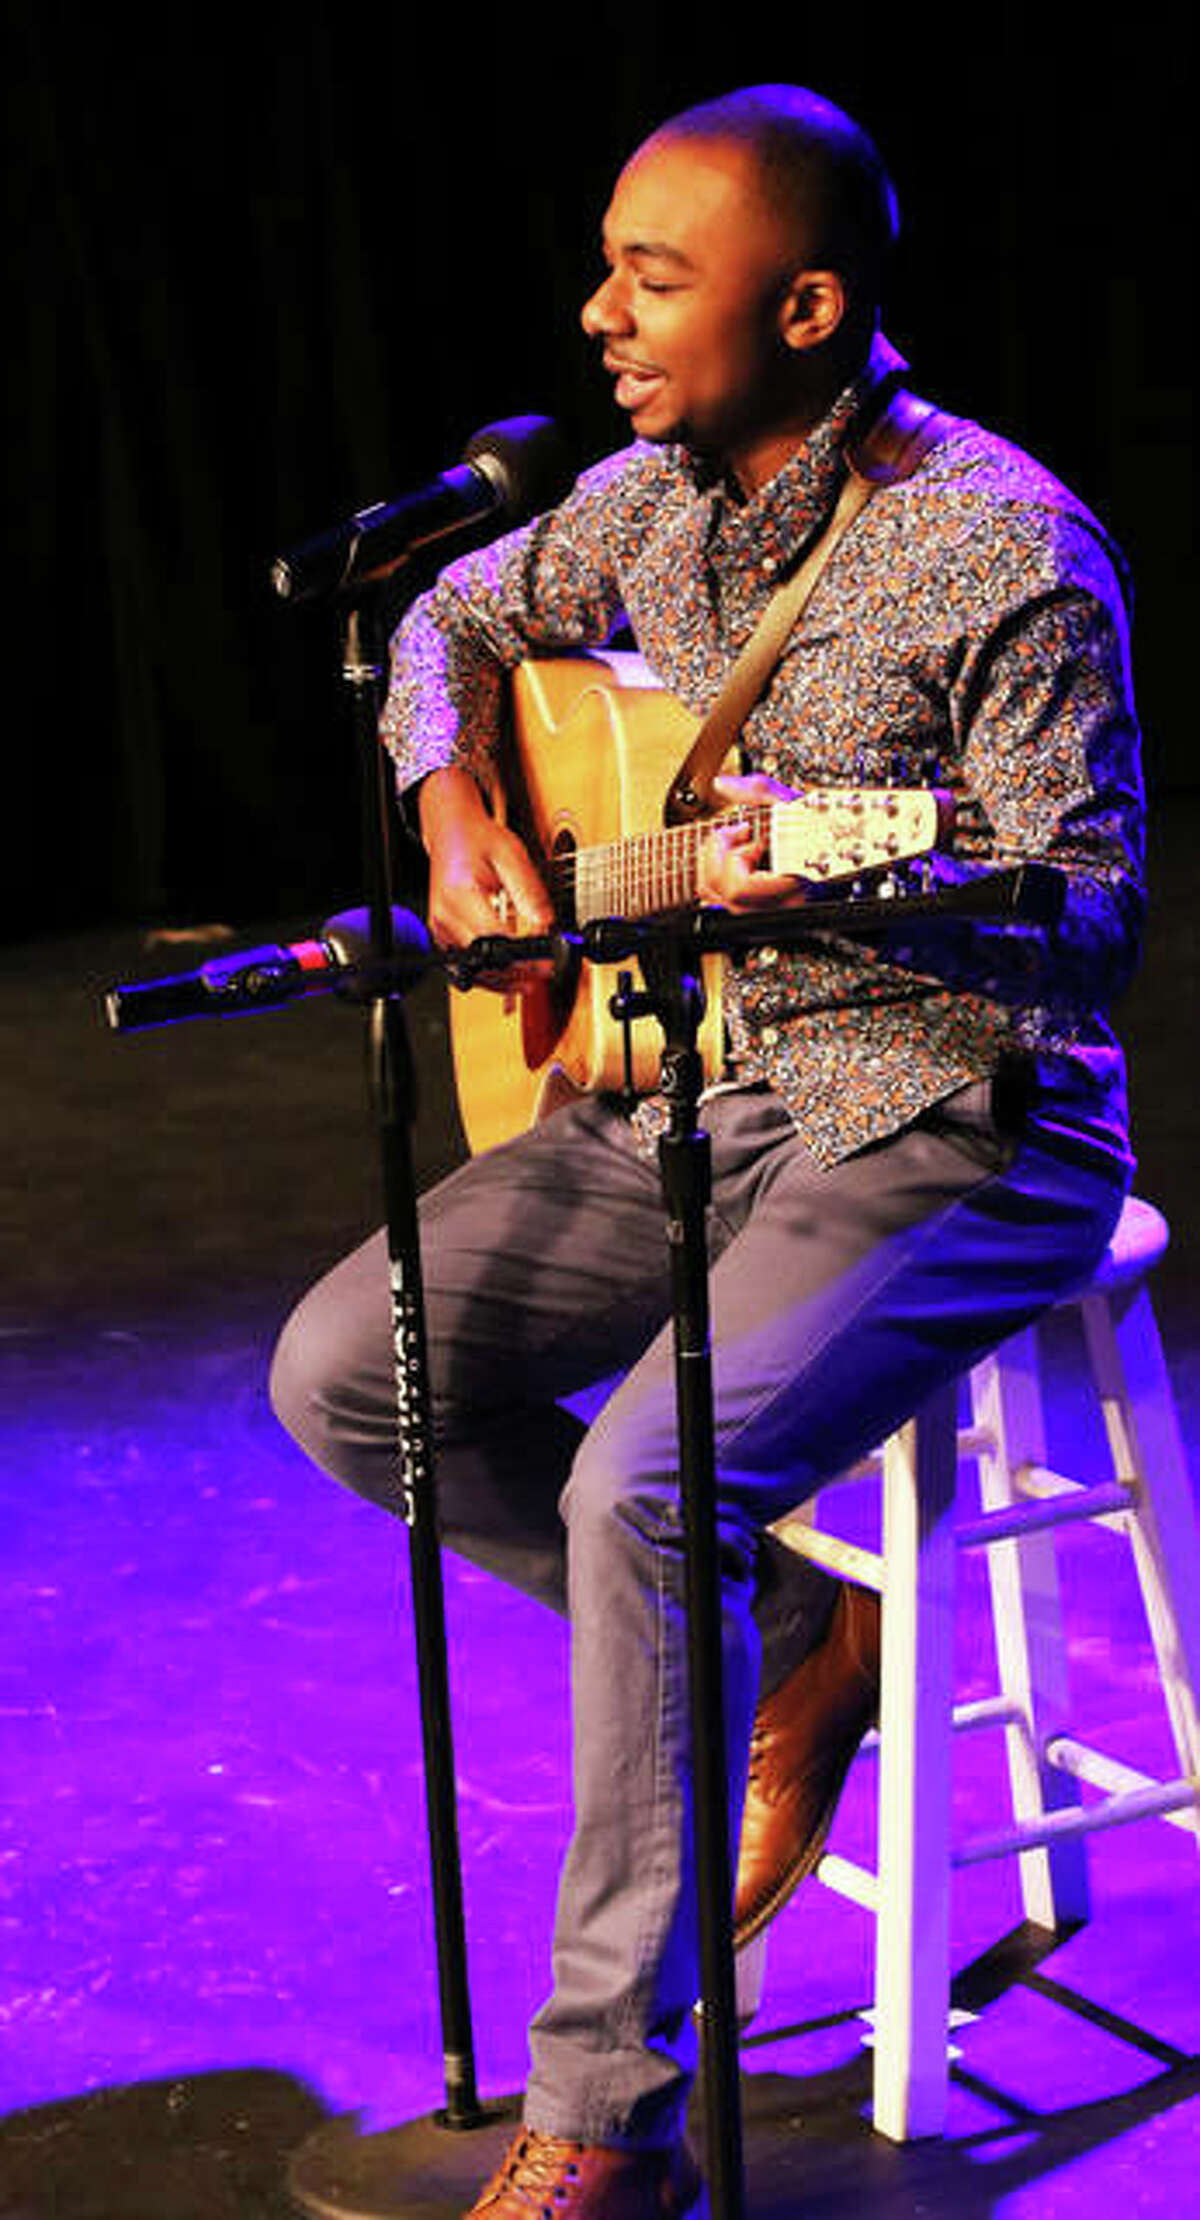 """Miles Brenton, 20, on stage at Alton Little Theater (ALT) Showplace, on Henry Street in Alton, took home first prize in ALT's """"The Riverbend's Got Talent,"""" its first big talent contest. Brenton won with his original song, charm and magical guitar, ALT Executive Director Lee Cox said."""